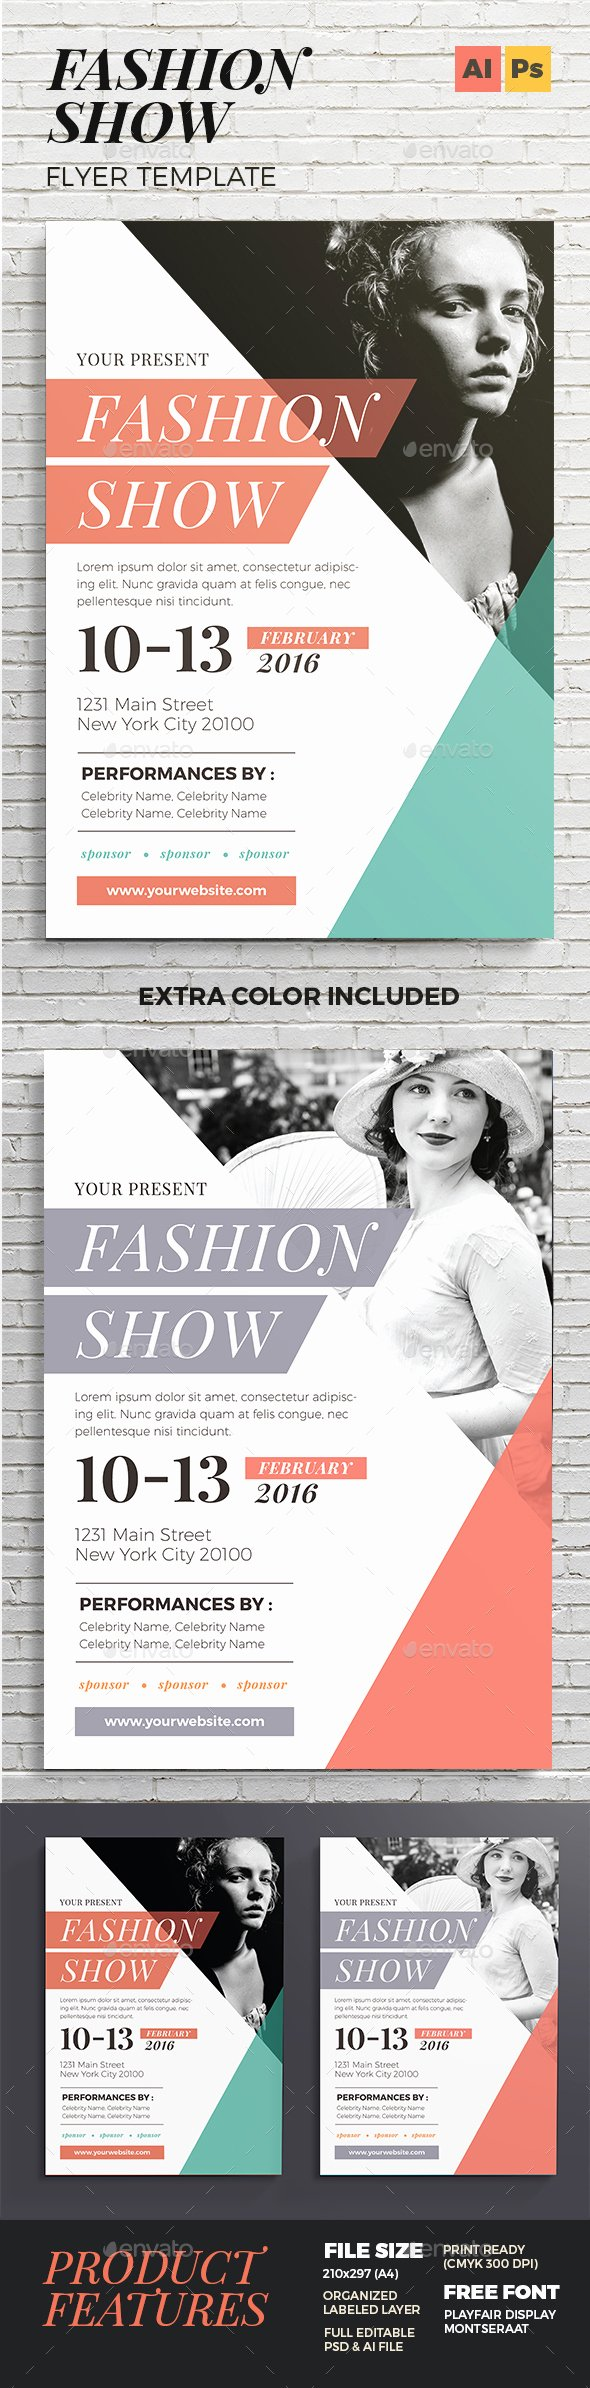 Fashion Show Flyer Template Unique Fashion Show Flyer by Vynetta